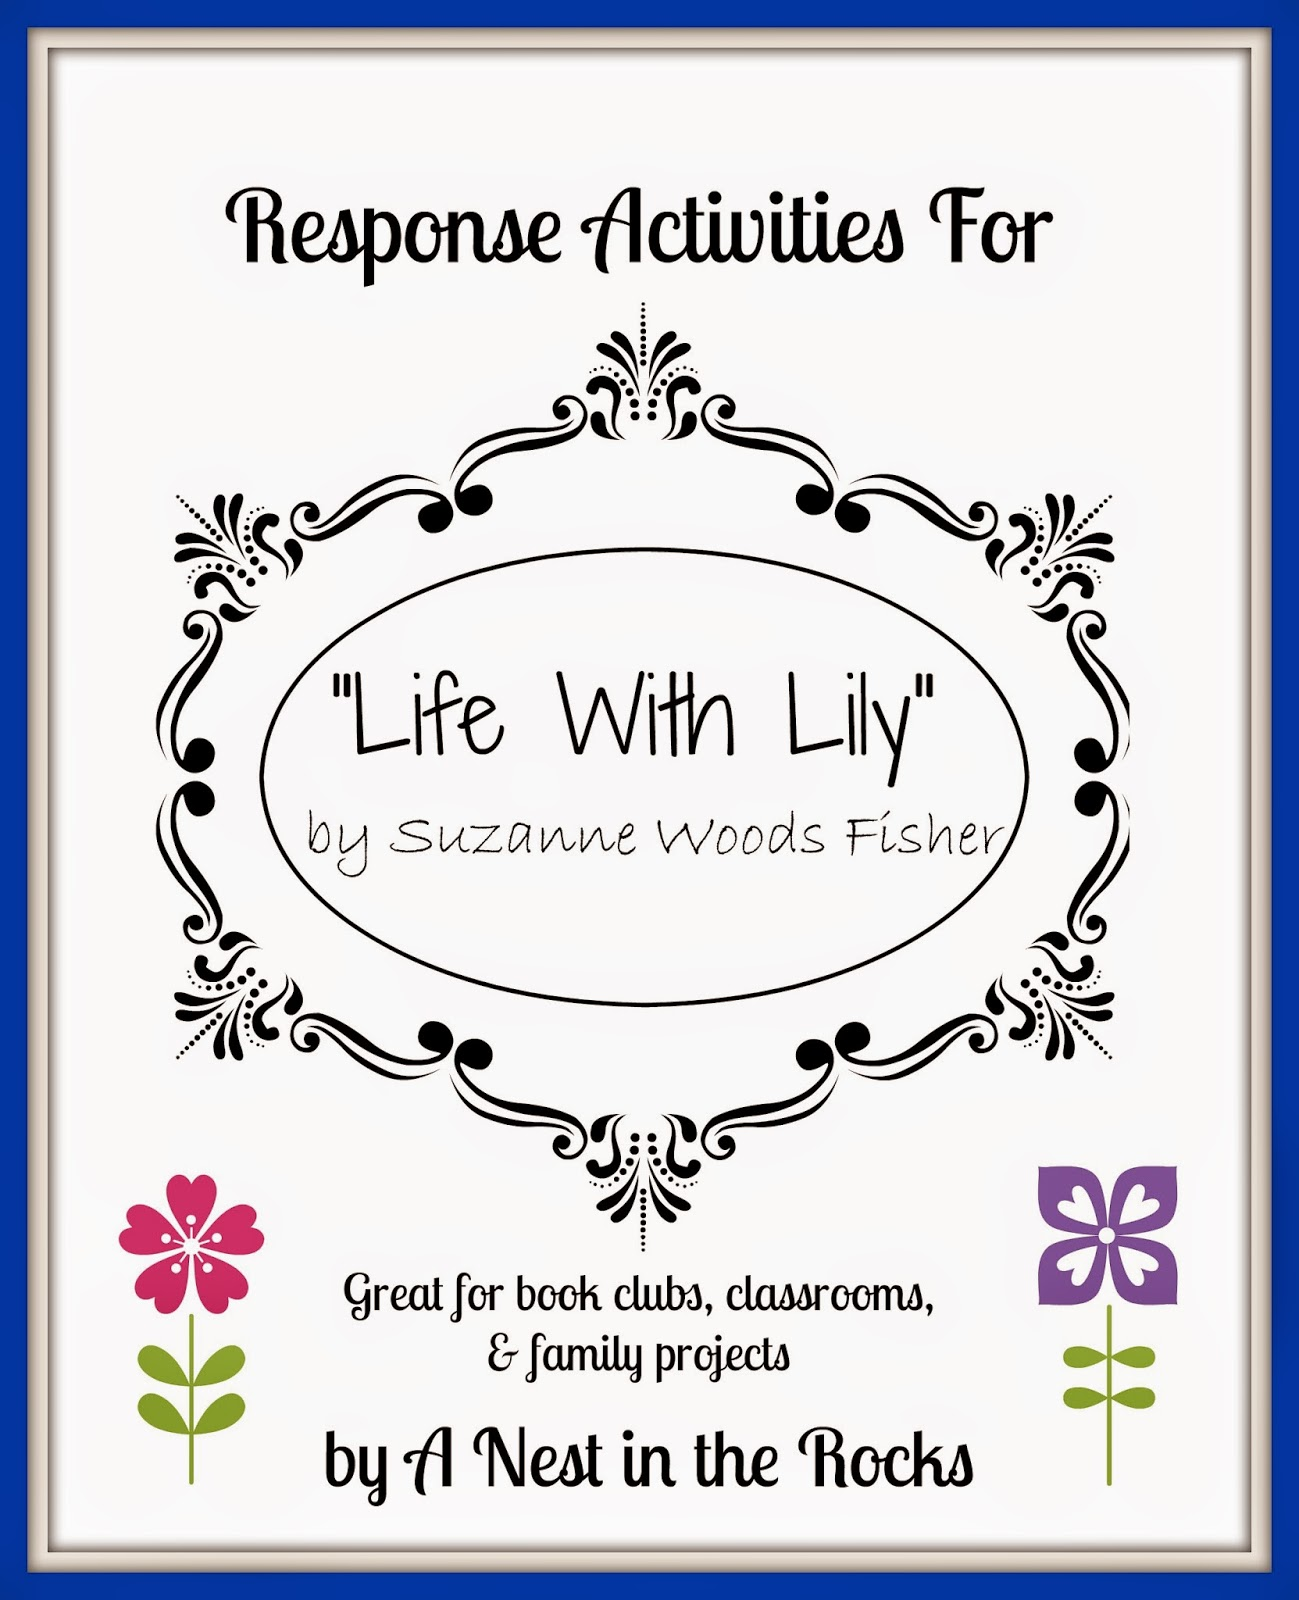 http://www.teacherspayteachers.com/Product/Literature-Circle-Activities-for-Life-With-Lily-1293512